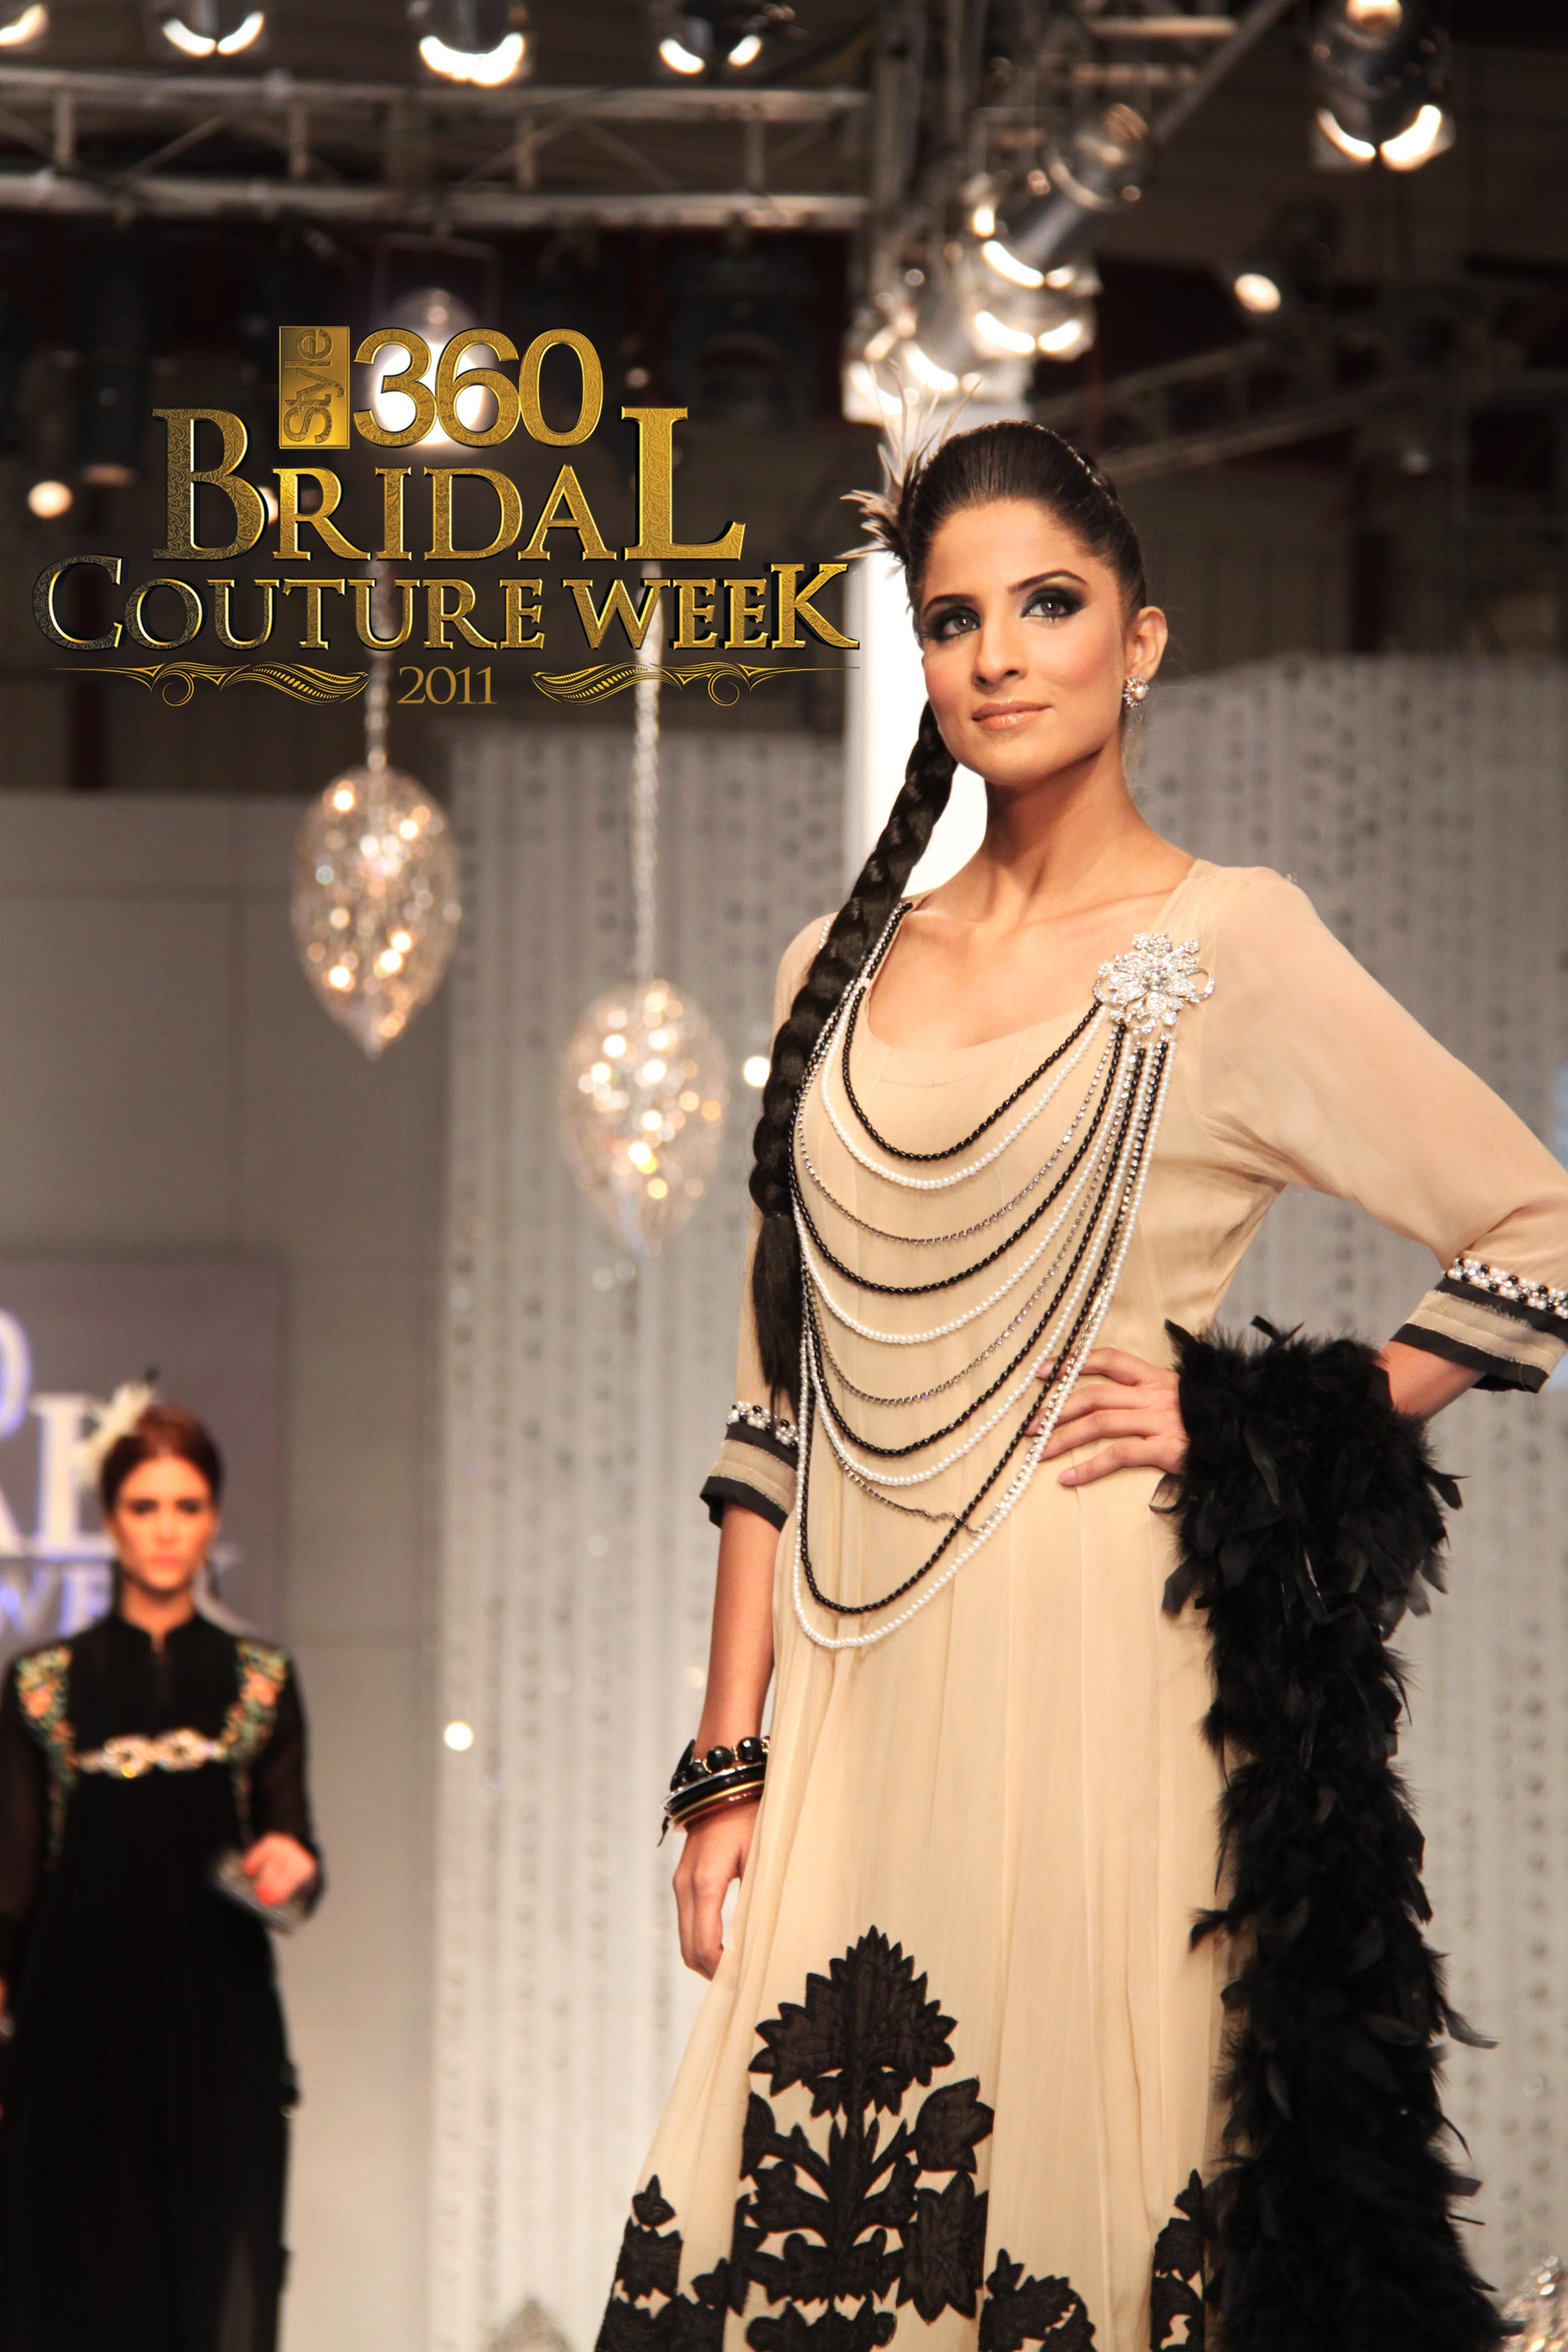 Day style bridal couture week press release hq